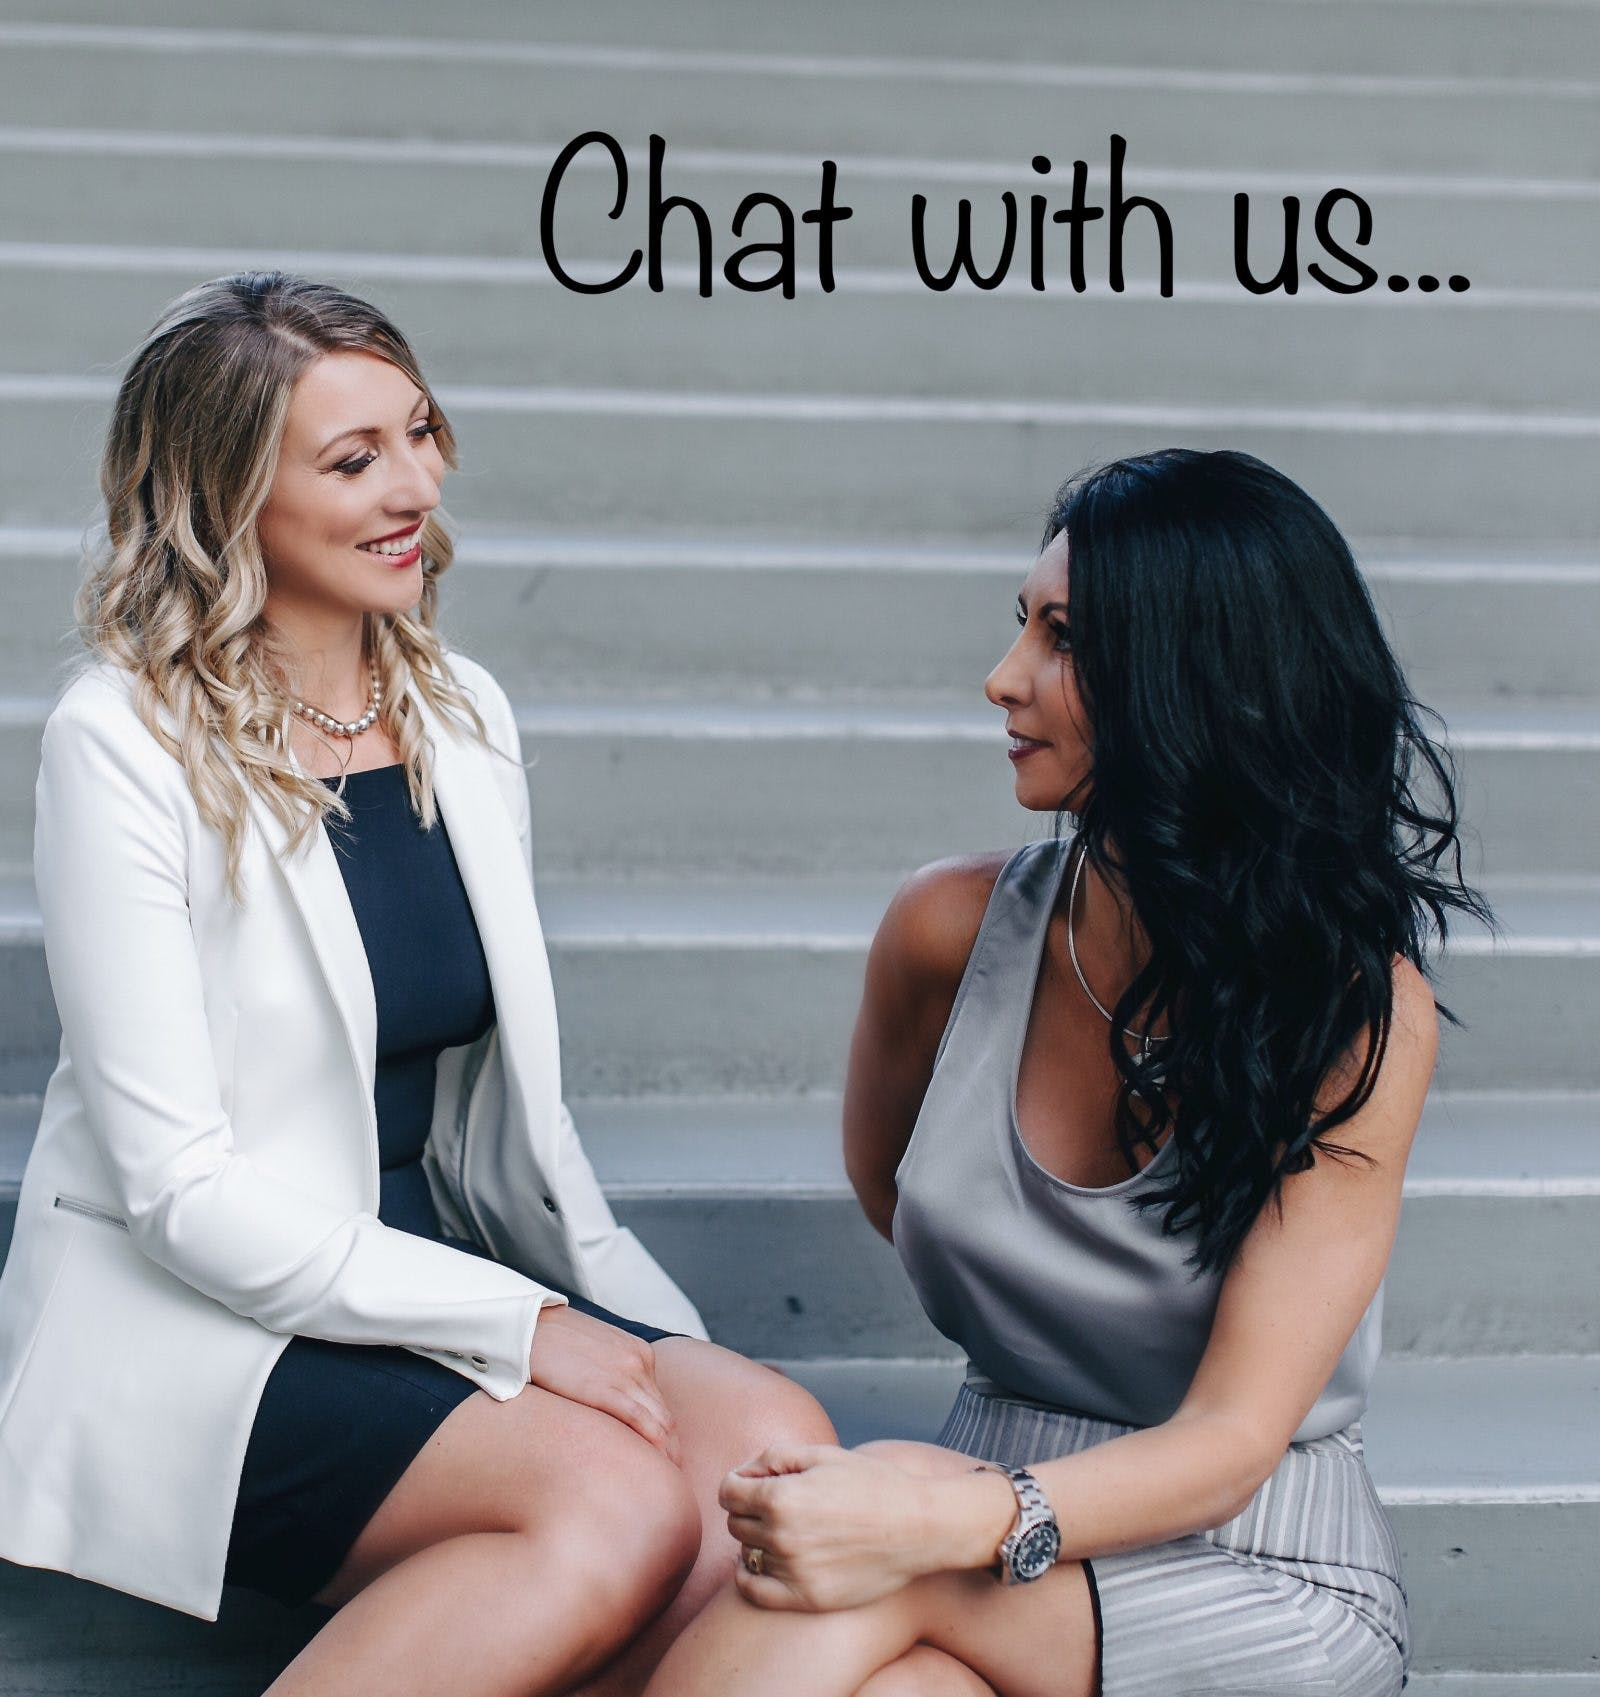 Buying a House, Calgary and Airdrie Realtors, The Beautiful Homes Team, Tammy Forrest and Shayna Nackoney Skauge